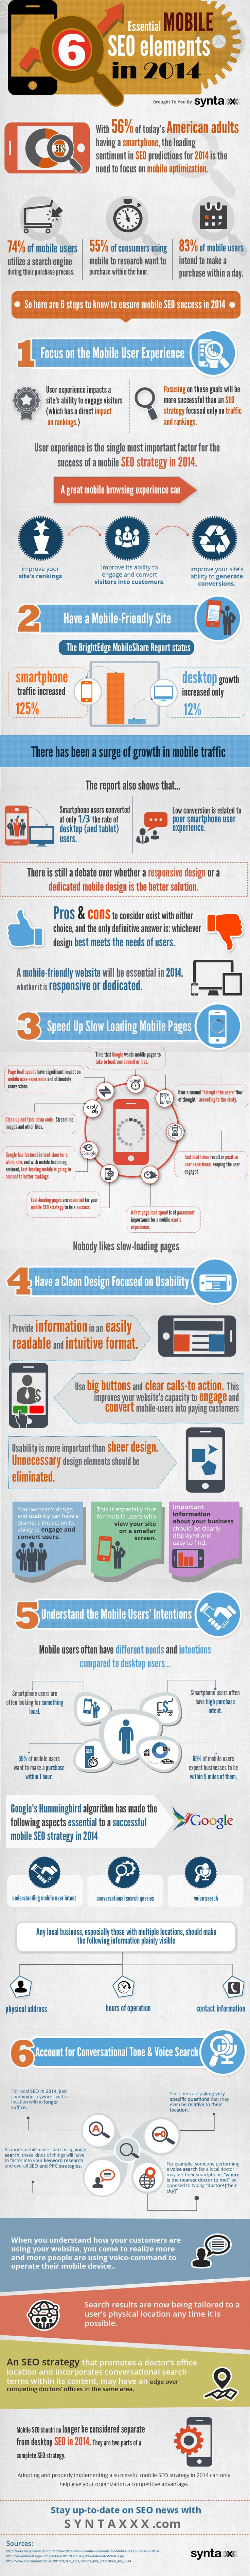 6 Essential Mobile SEO Elements in 2014 - Via Act-On Software